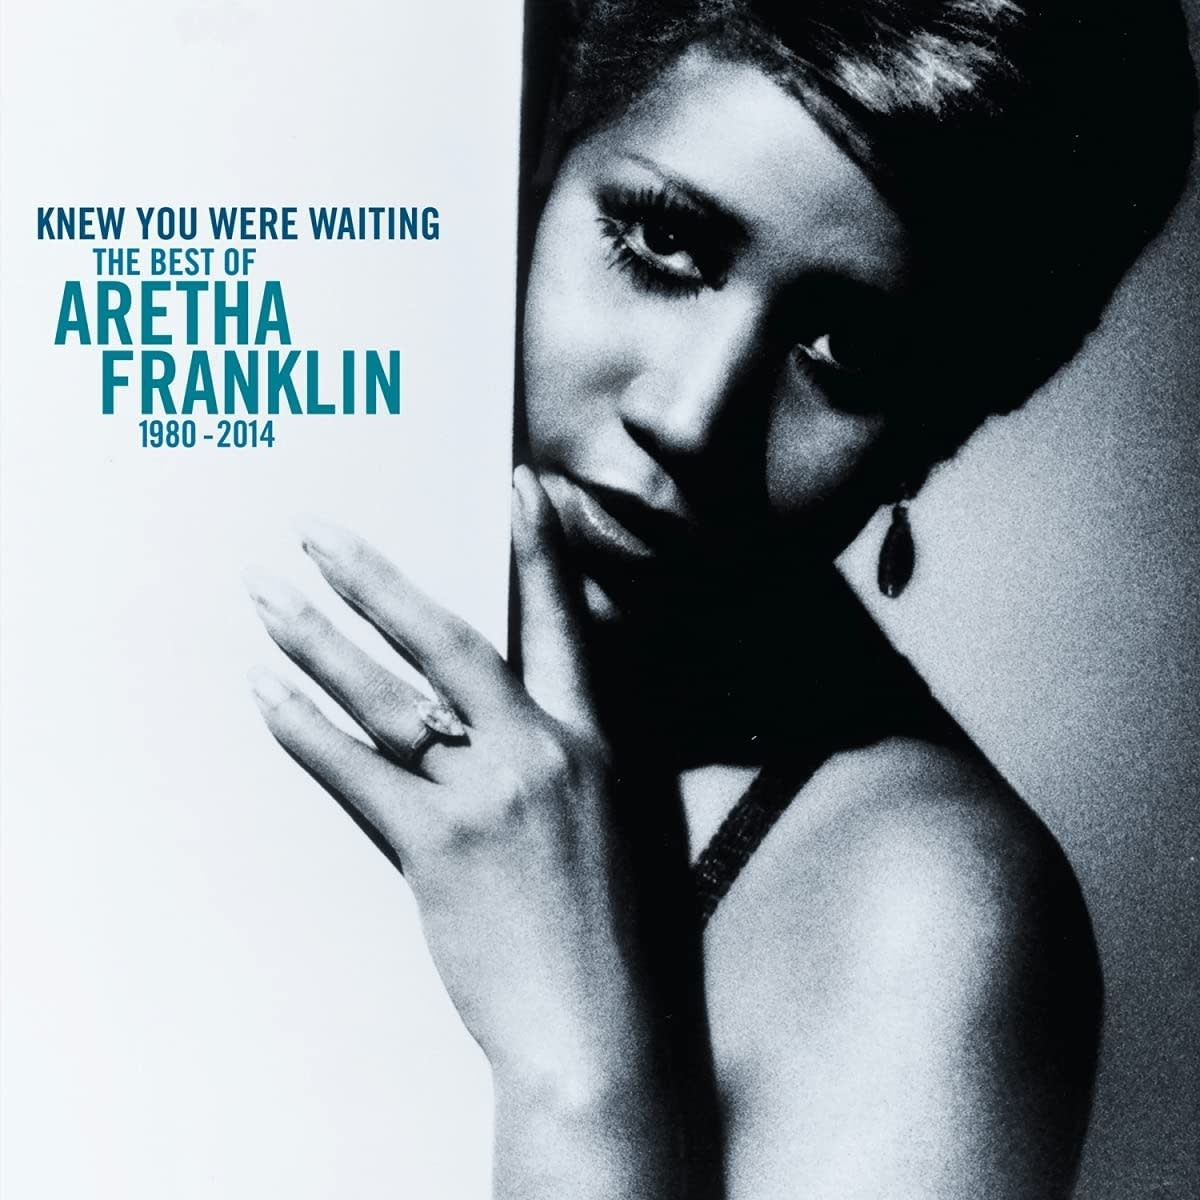 Aretha Franklin – Knew You Were Waiting- The Best Of Aretha Franklin 1980- 2014